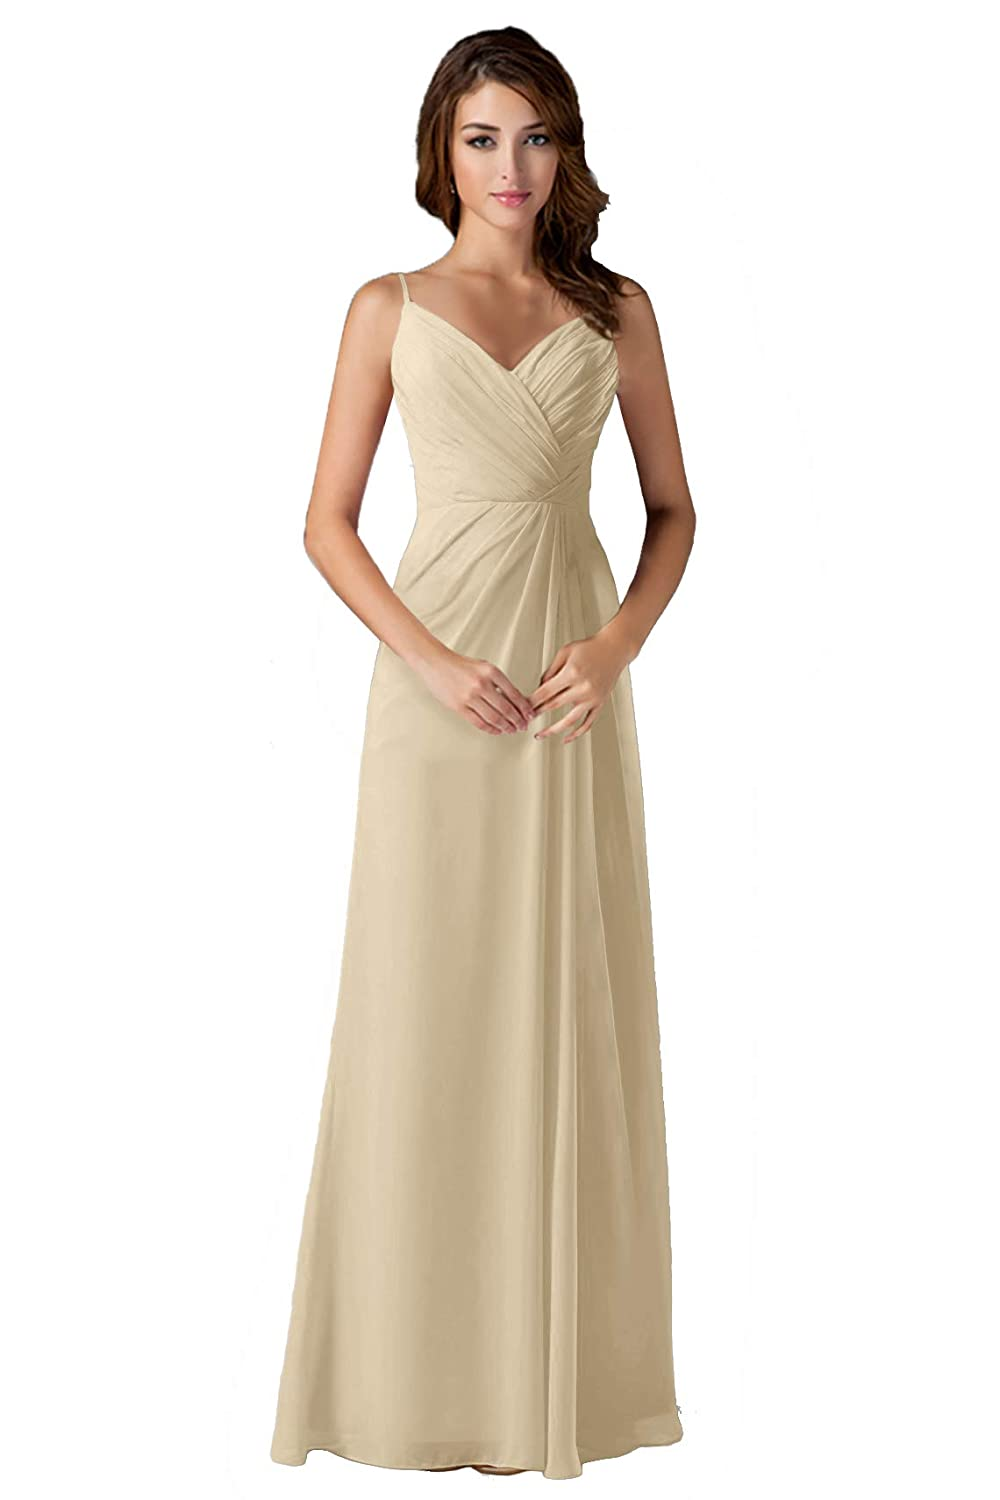 Champagne ANGELWARDROBE V Neck Spaghetti Strap Bridesmaid Dresses Long Wedding Party Gown